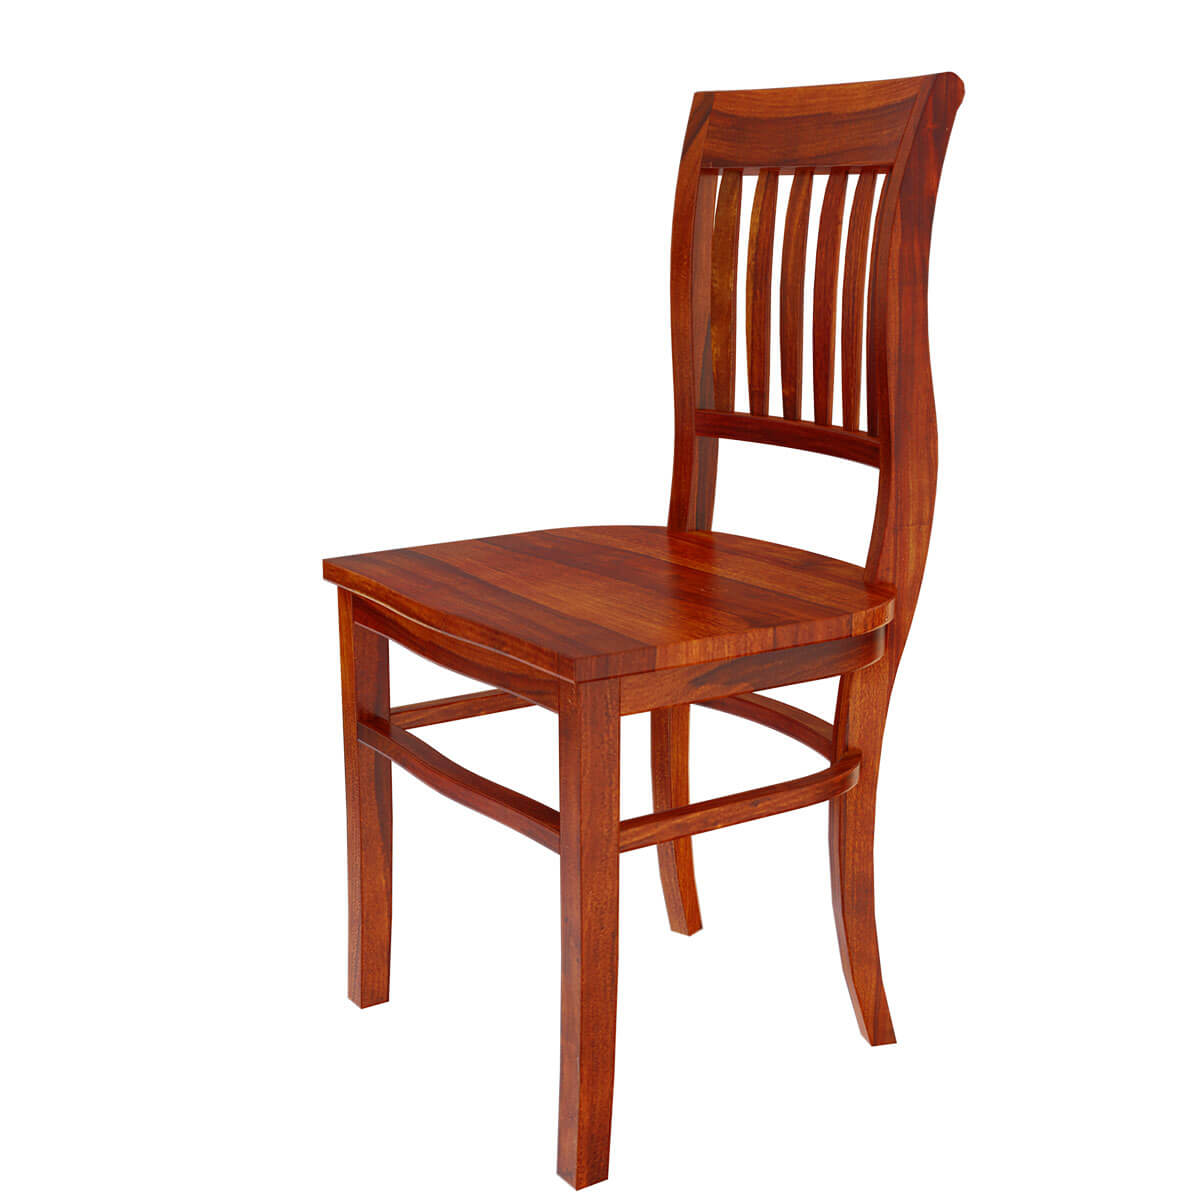 Siena Rustic Solid Wood Side Dining Chair